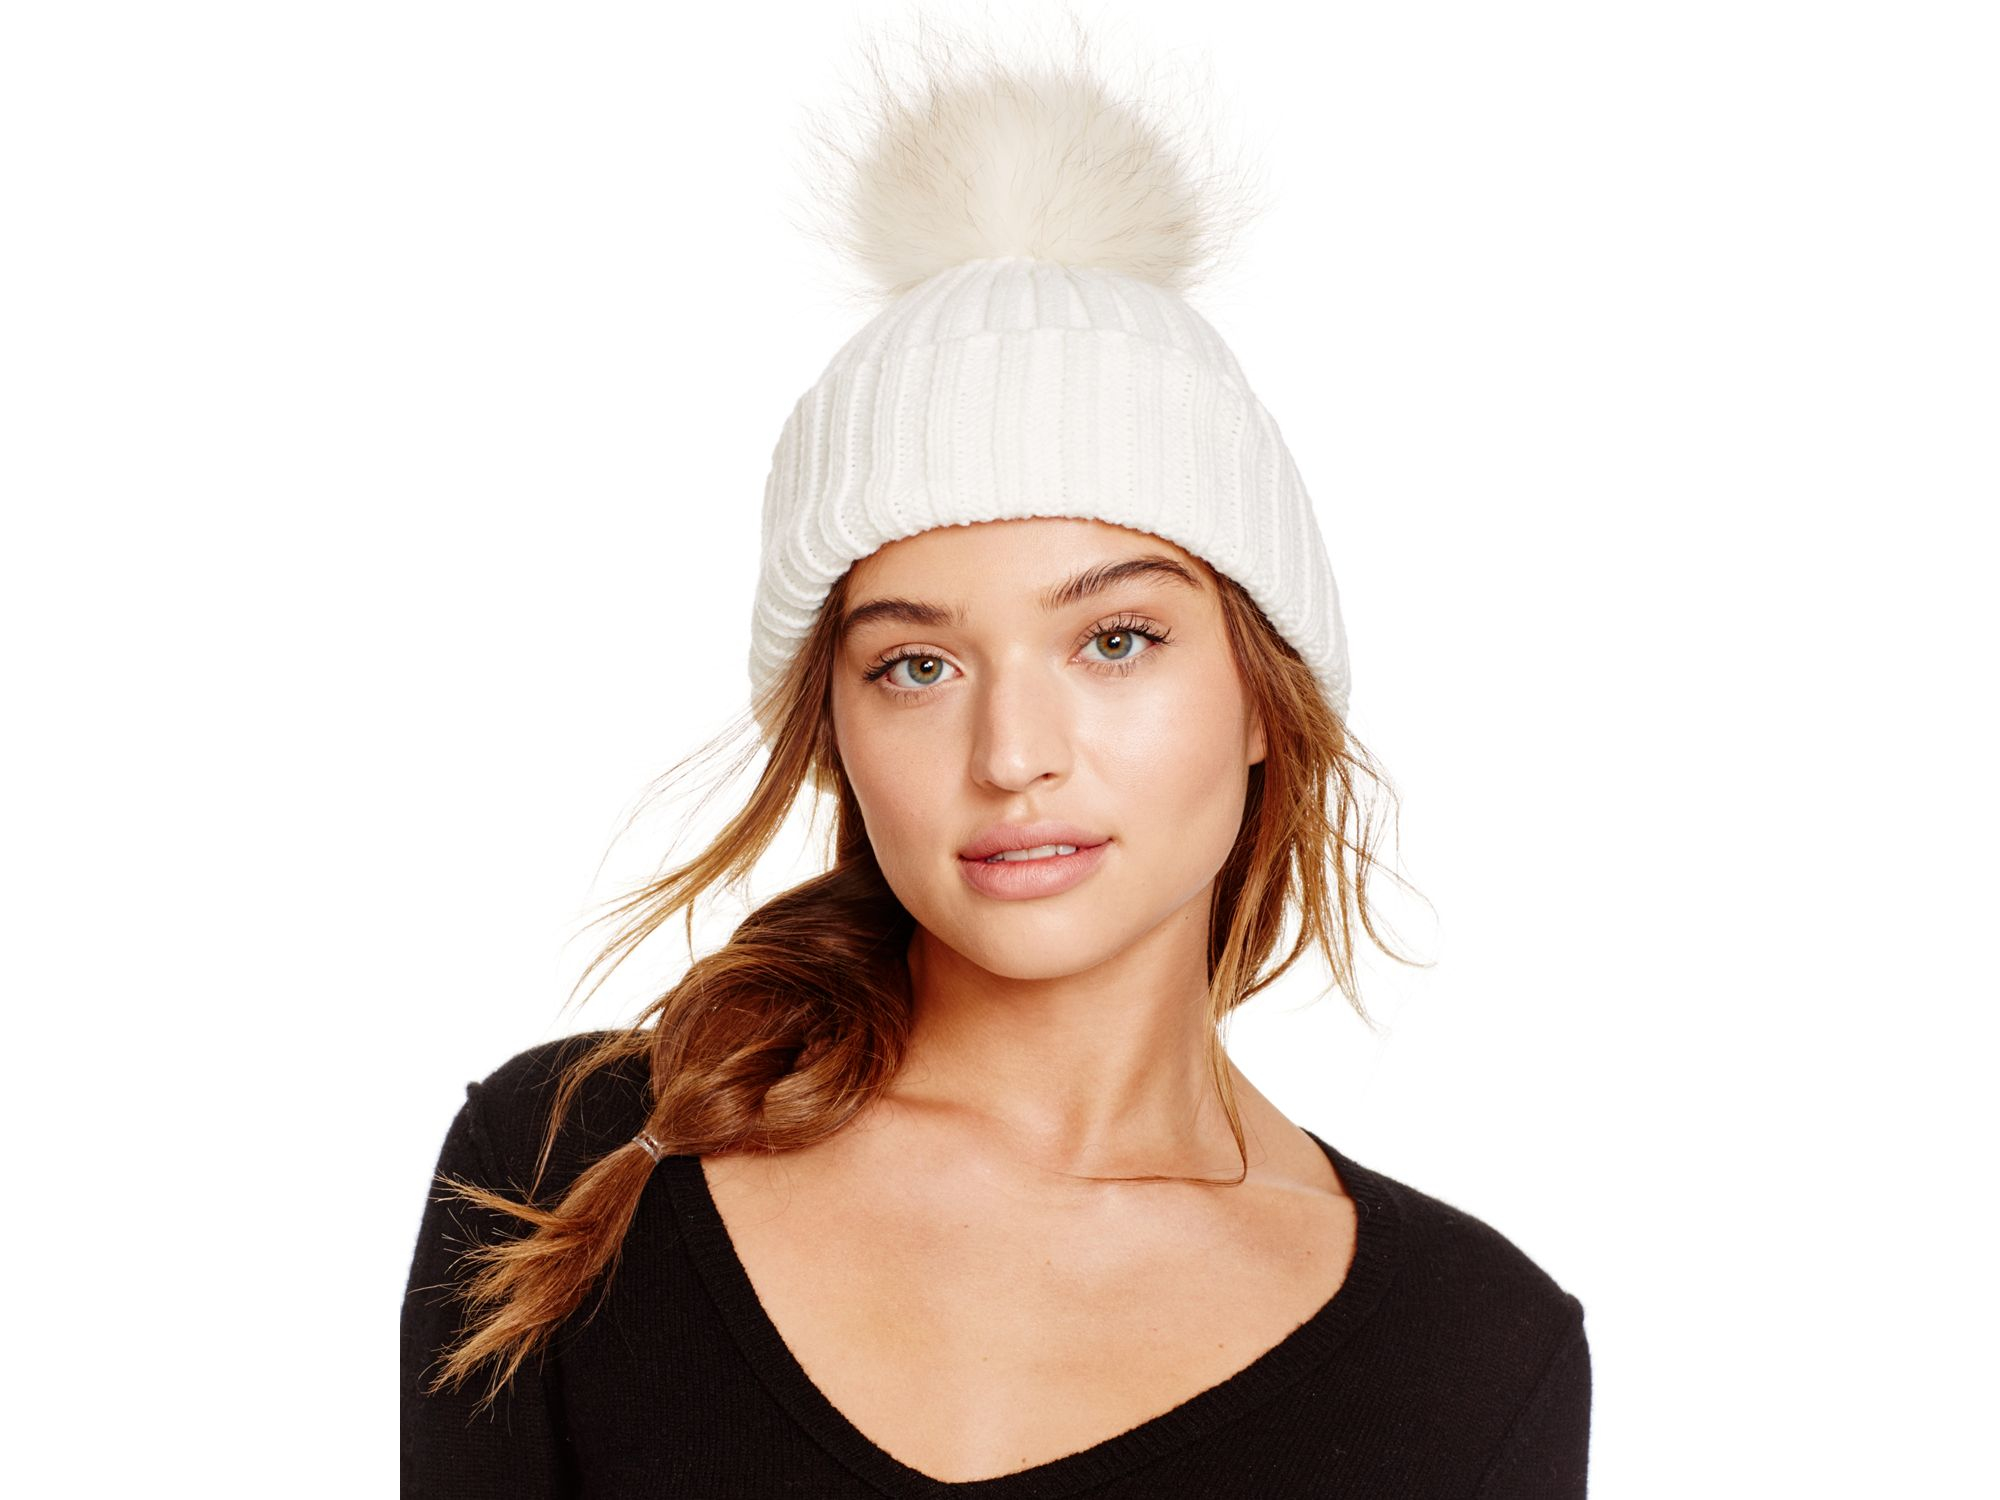 Lyst - Meteo by Yves Salomon Beanie Hat With Fur Bobble in White 457001af20b0